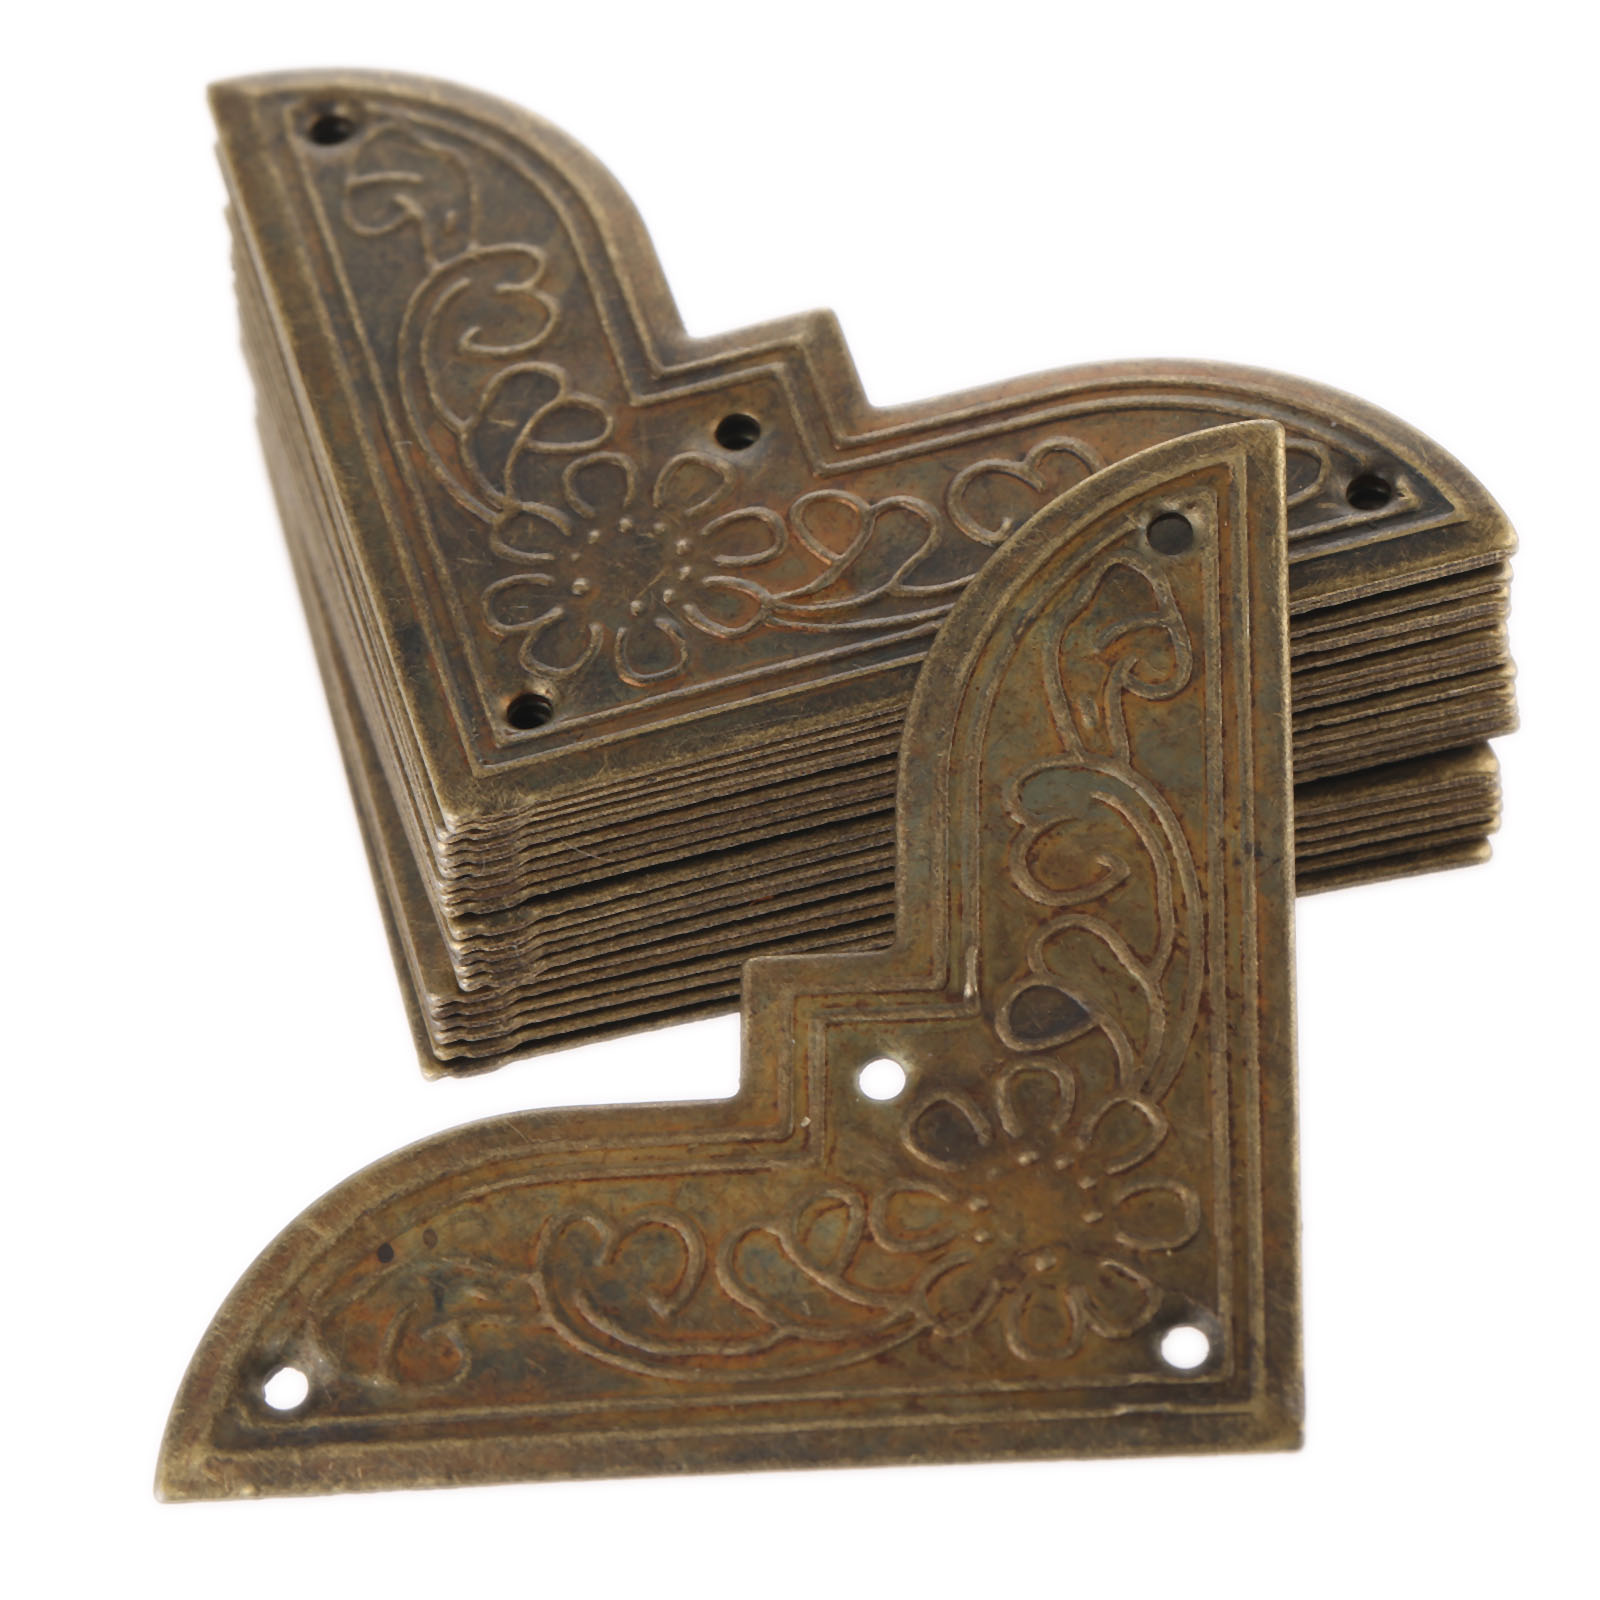 Us 4 44 21 Off 20pcs Furniture Fittings Antique Corner Bracket Jewelry Gift Box Wood Case Decorative Feet Leg Corner Protector For Furniture In